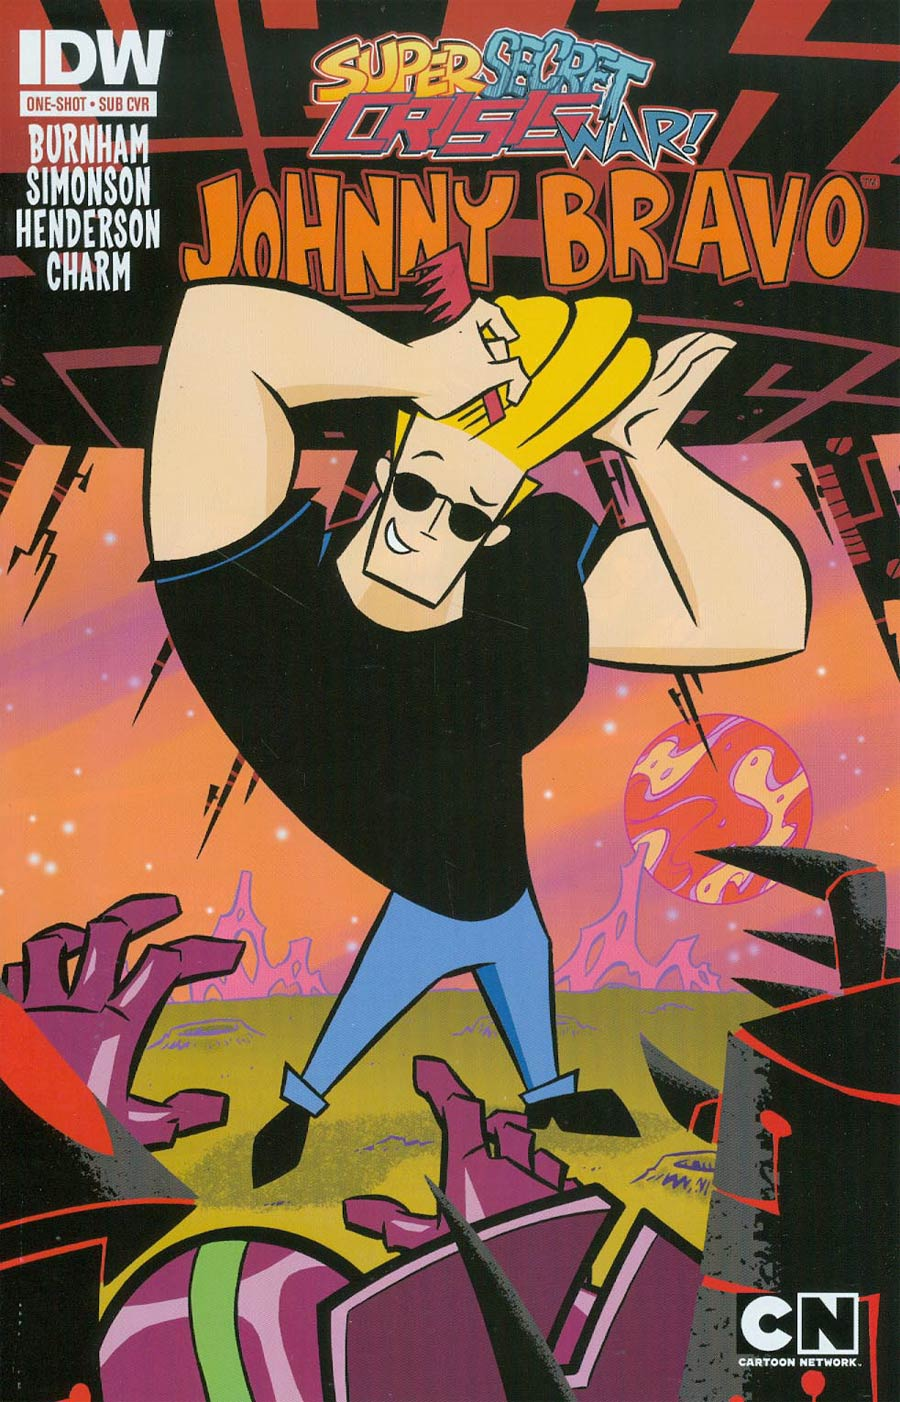 Super Secret Crisis War Johnny Bravo #1 Cover B Variant Ethan Beavers Subscription Cover